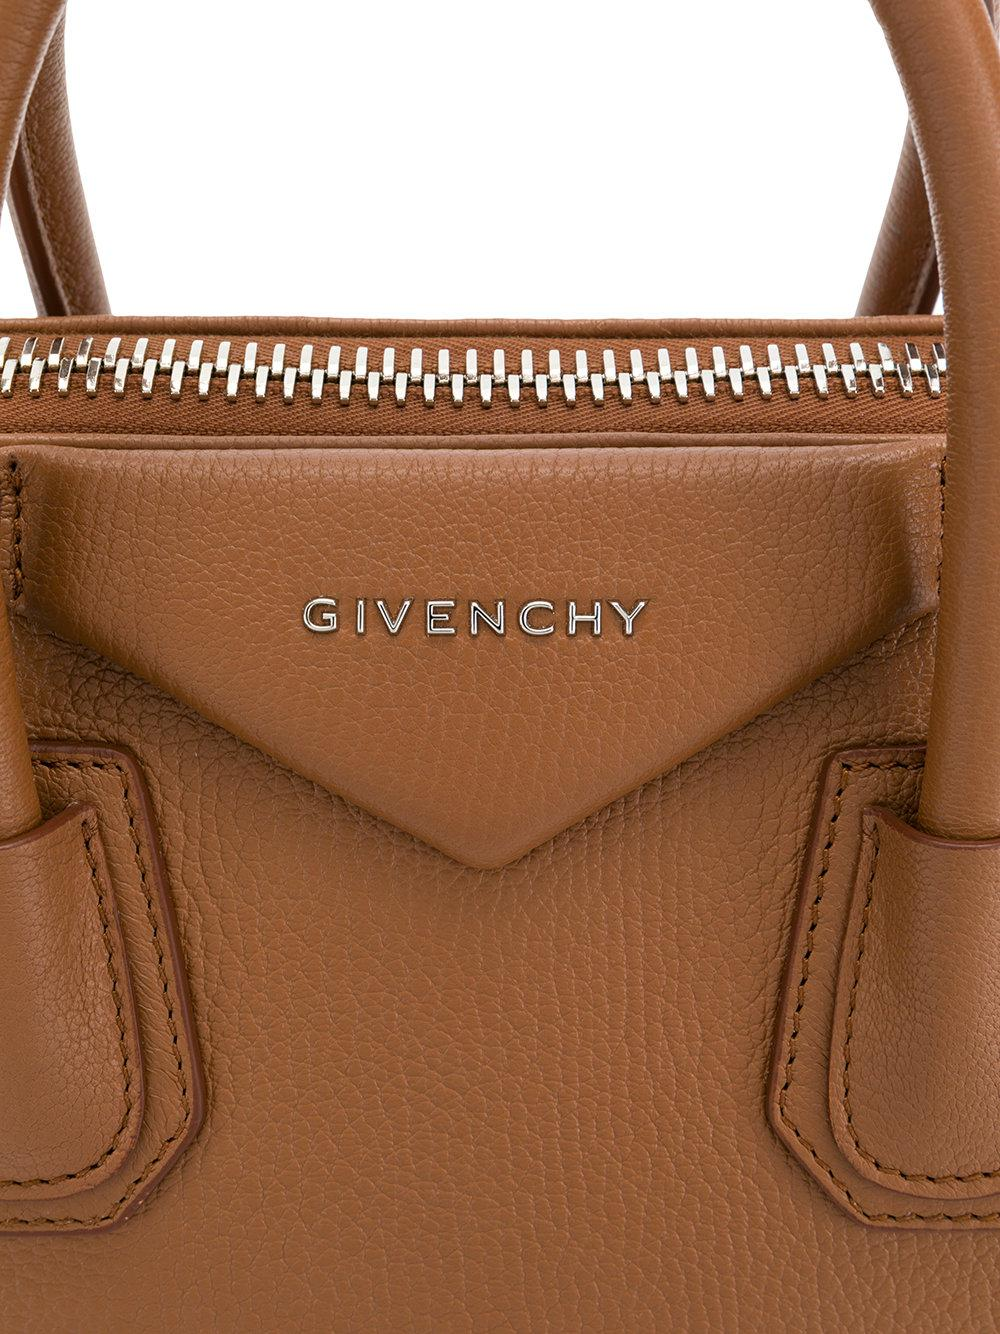 Givenchy Leather Antigona Tote in Brown